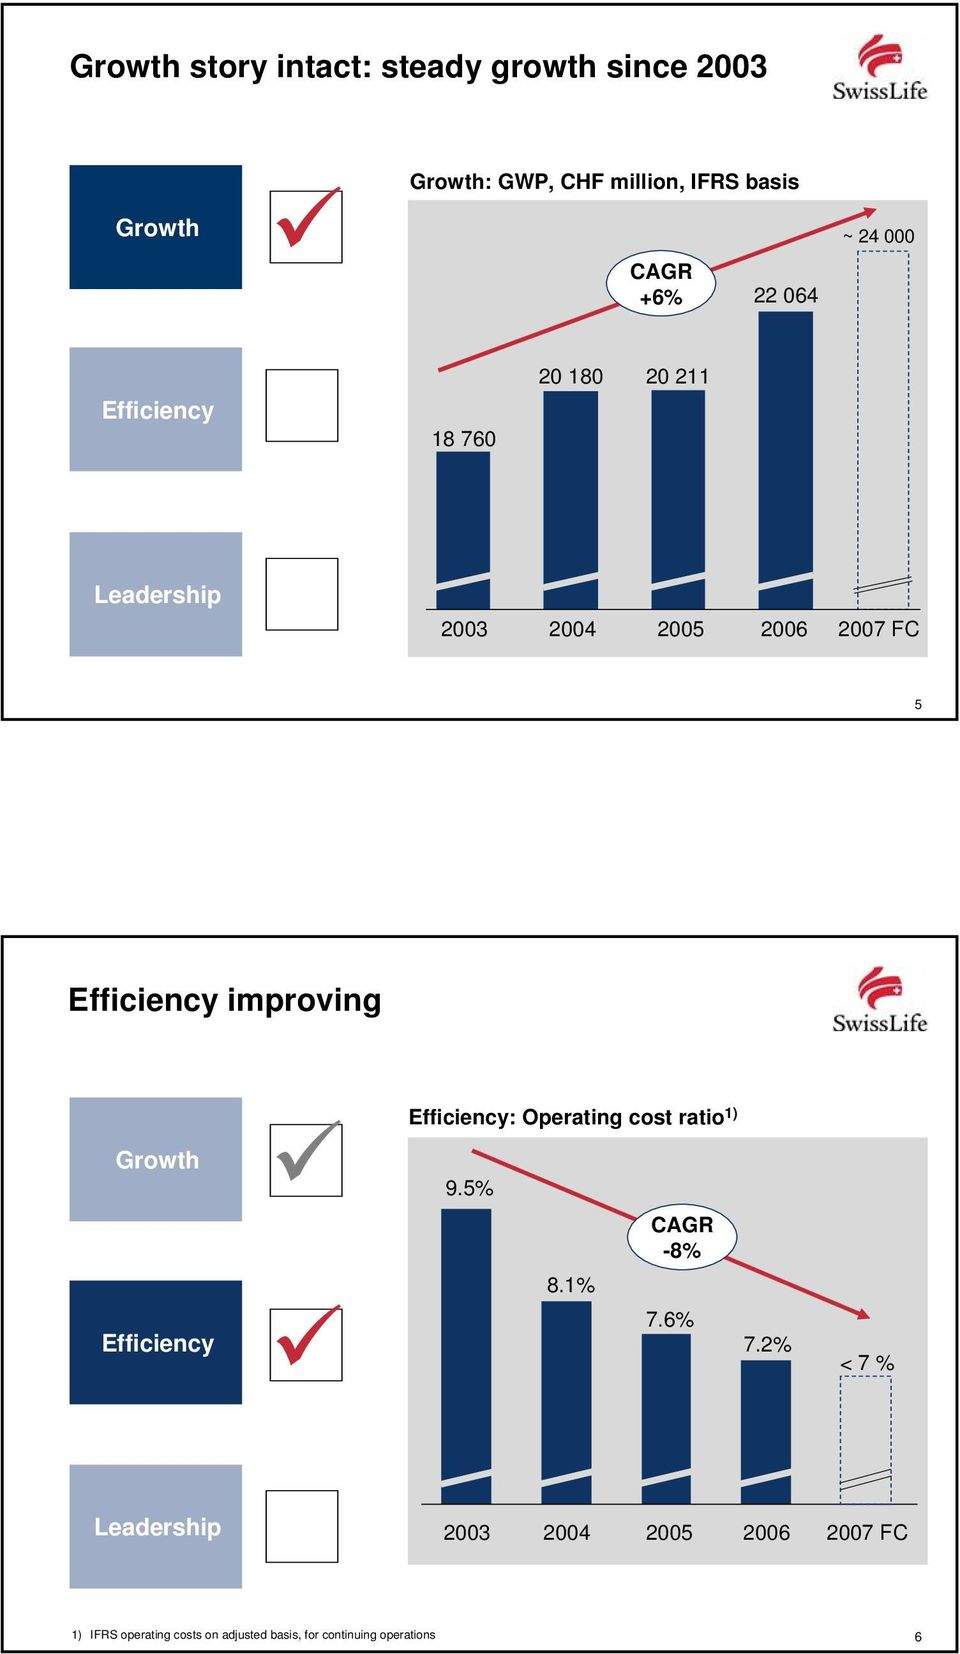 improving Growth Efficiency Efficiency: Operating cost ratio 1) 9.5% 8.1% CAGR -8% 7.6% 7.